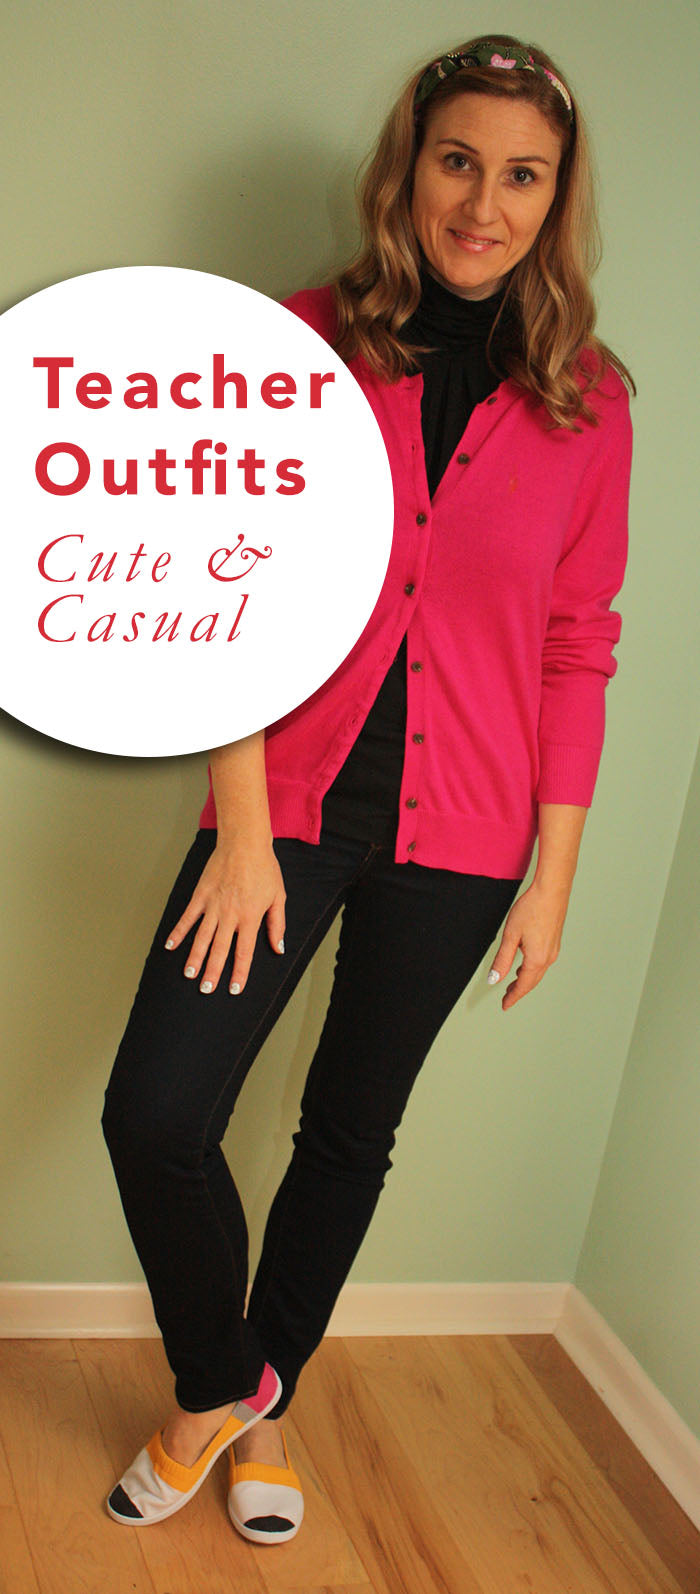 Business casual outfits for women from Pampered Teacher